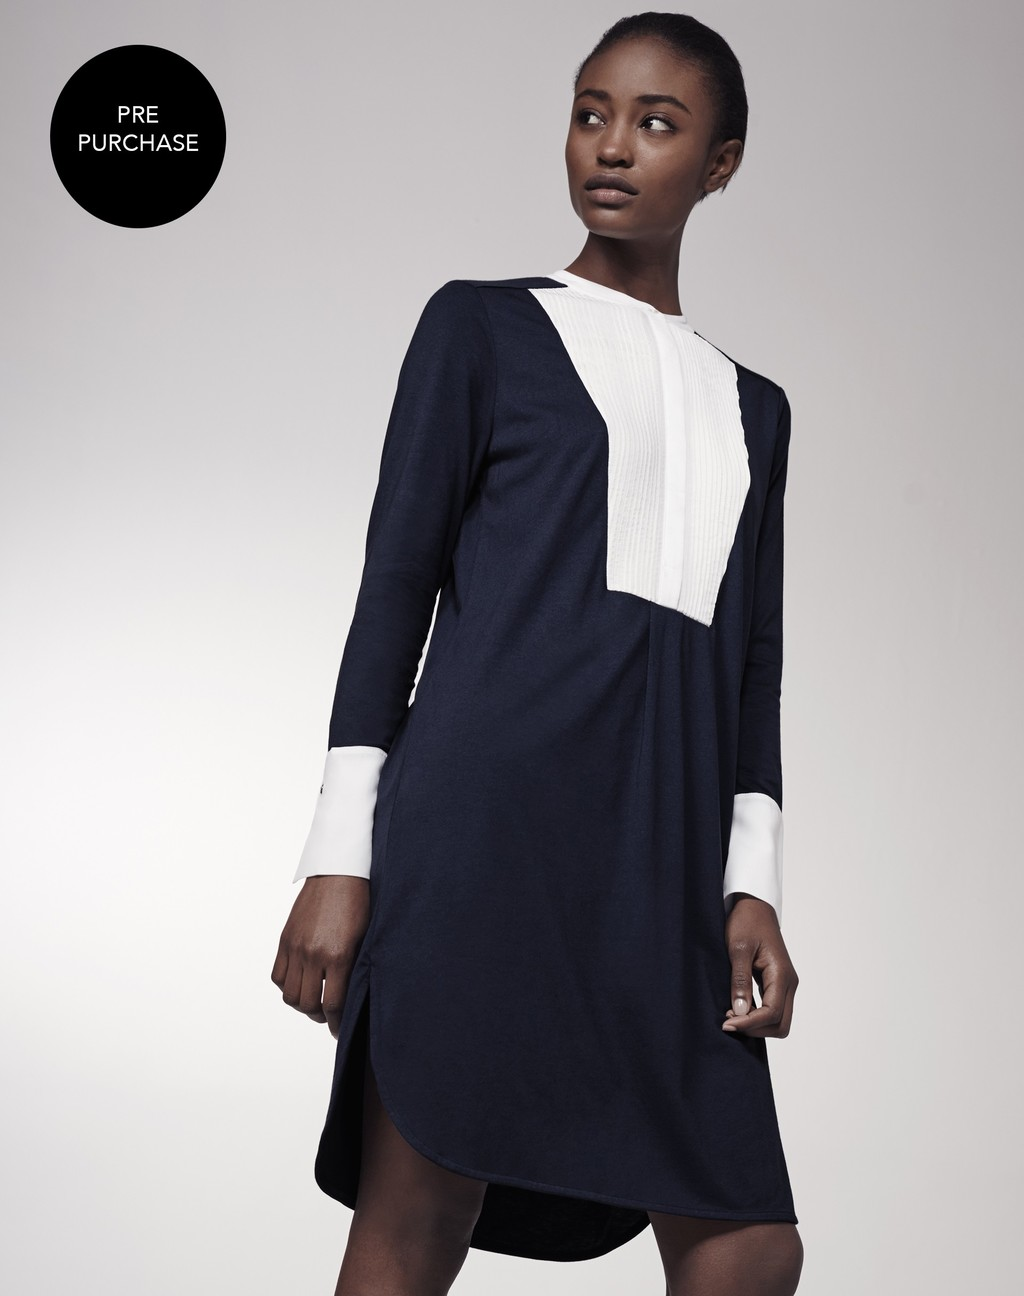 Oversized Grandad Shirt Dress French Navy/White - style: shirt; secondary colour: white; predominant colour: navy; occasions: evening; length: just above the knee; fit: body skimming; fibres: cotton - mix; neckline: crew; sleeve length: long sleeve; sleeve style: standard; texture group: cotton feel fabrics; pattern type: fabric; pattern: colourblock; multicoloured: multicoloured; season: s/s 2016; wardrobe: event